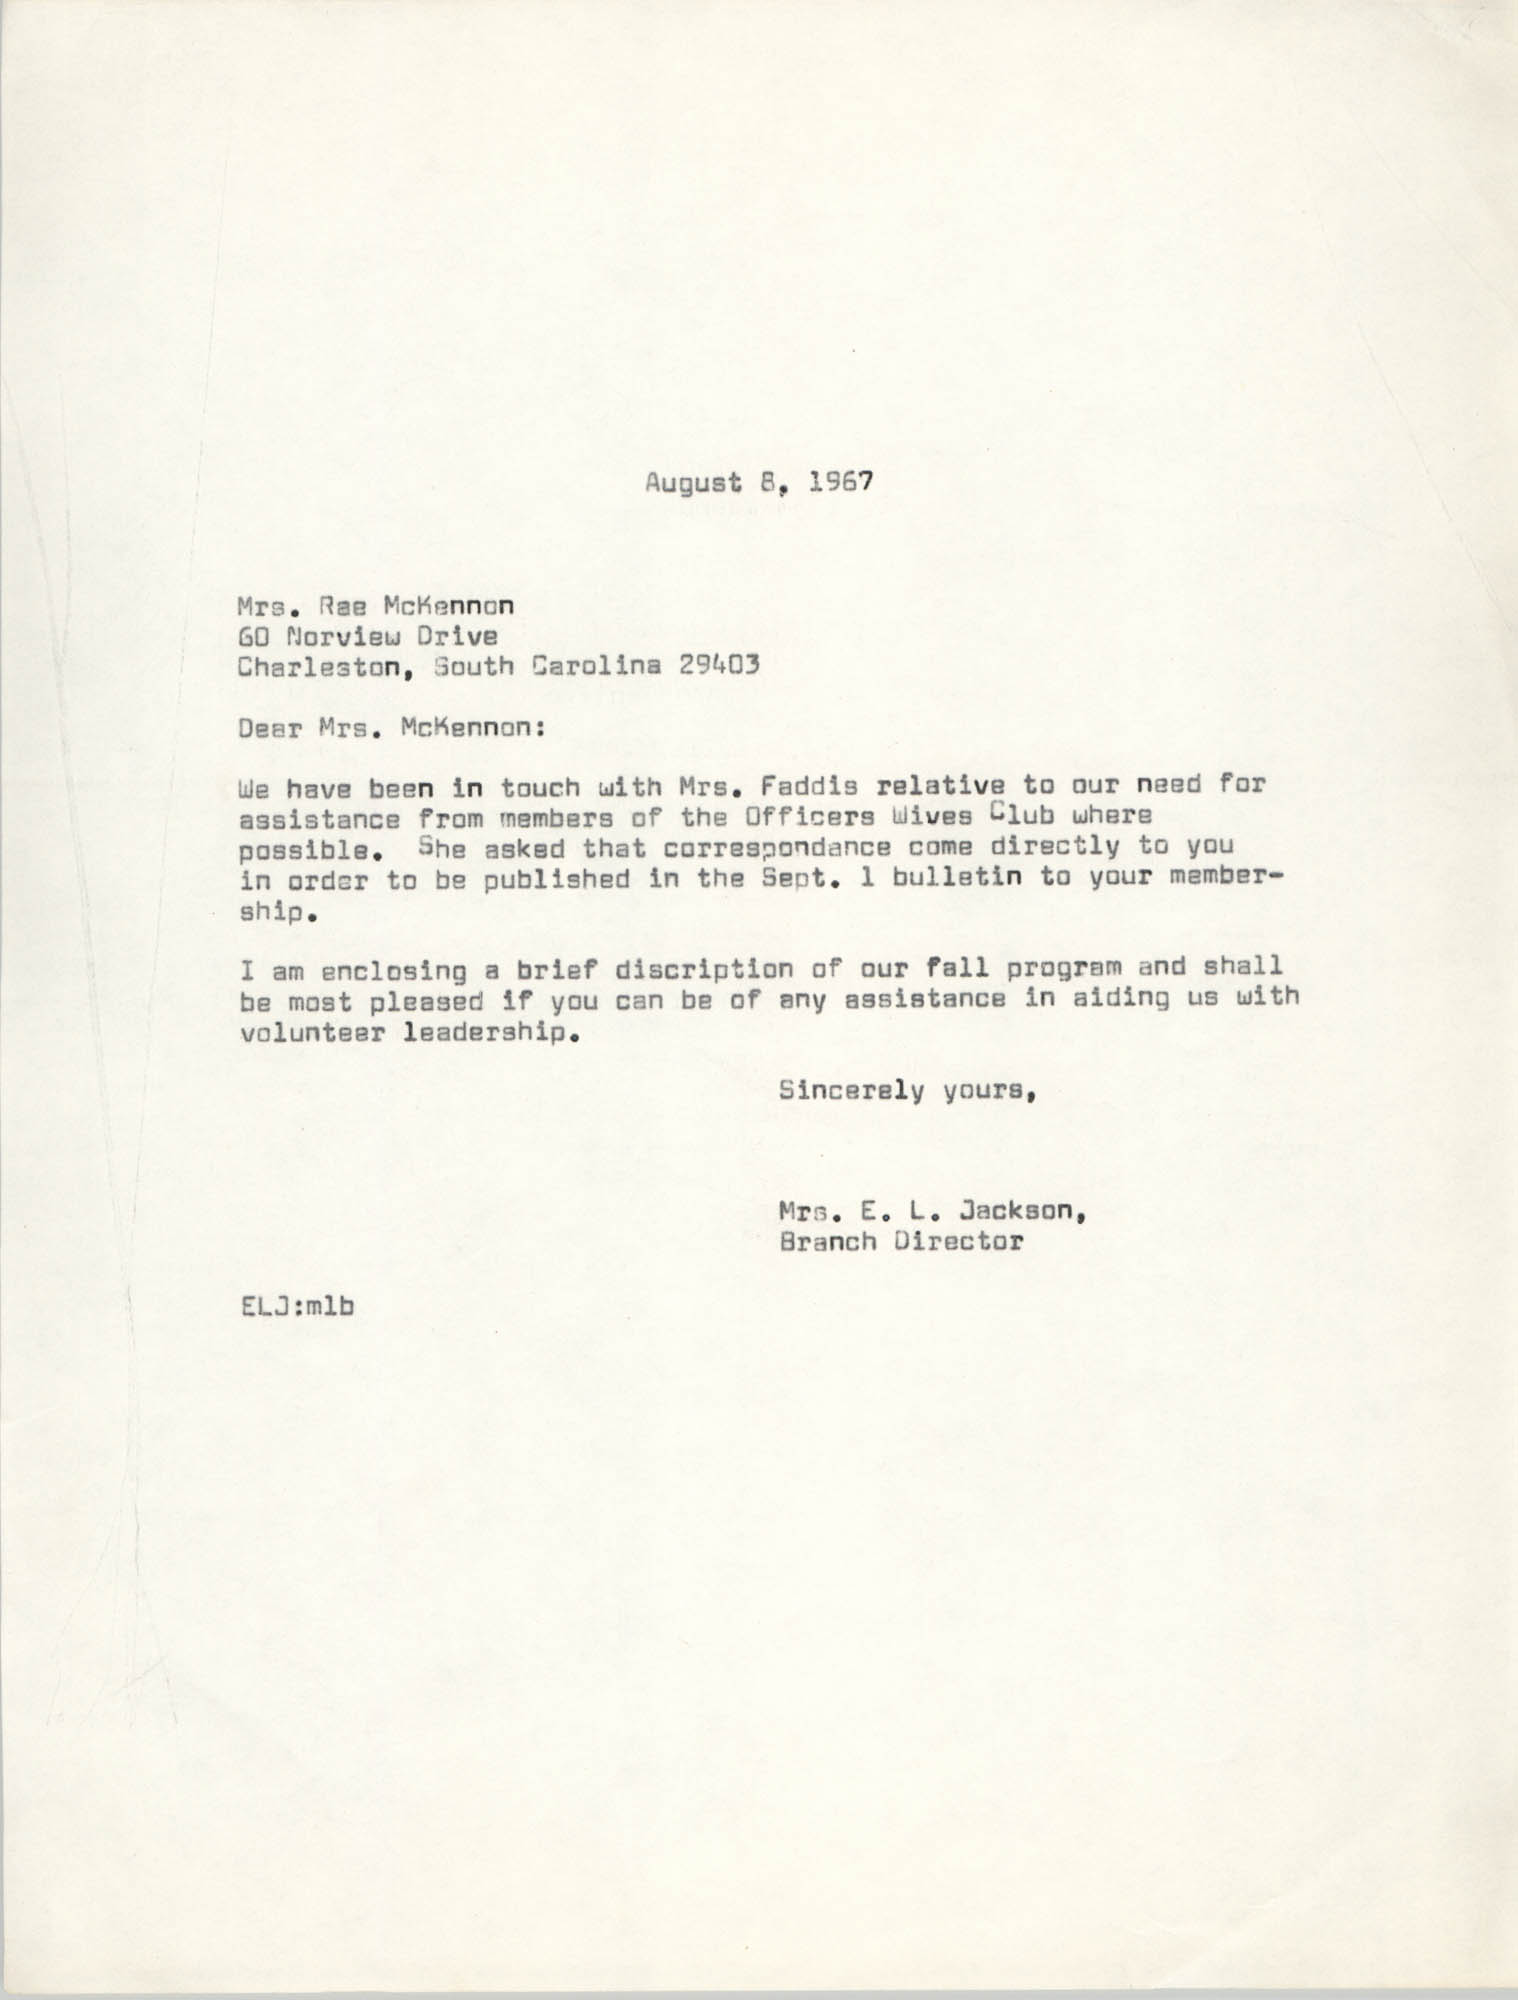 Letter from Christine O. Jackson to Mrs. Rae McKennon, August 8, 1967